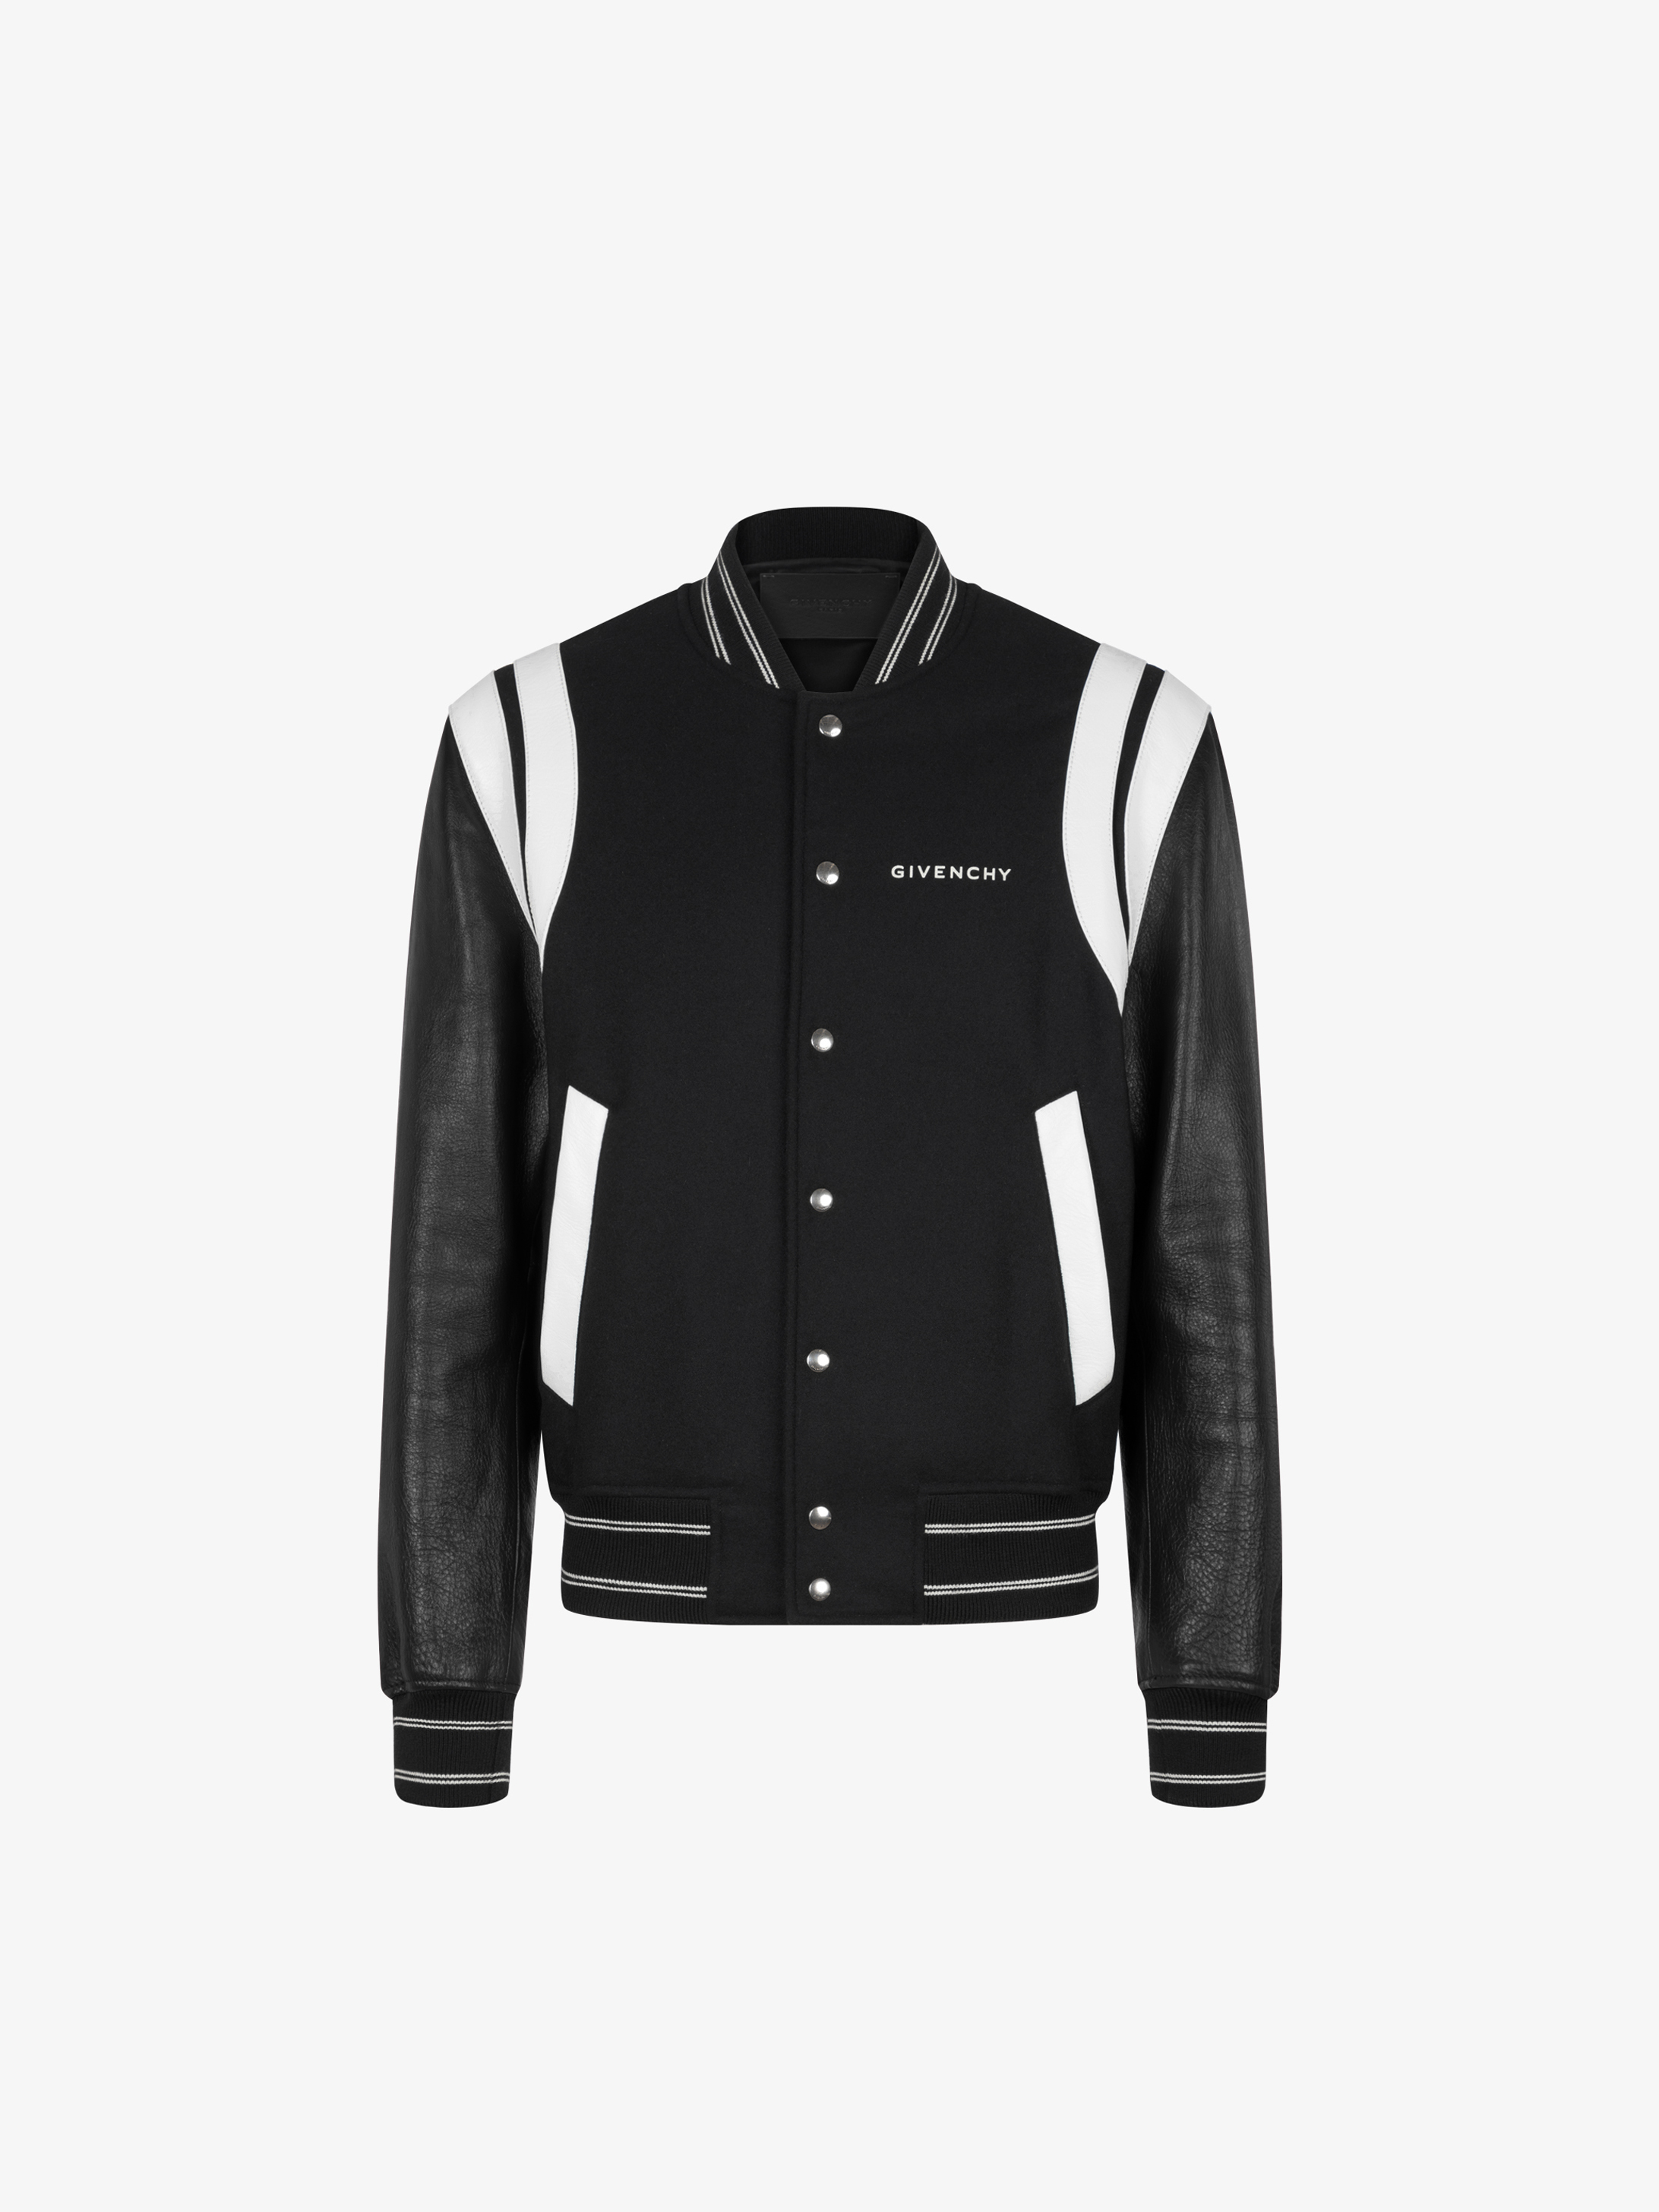 GIVENCHY Split bomber jacket in wool and leather